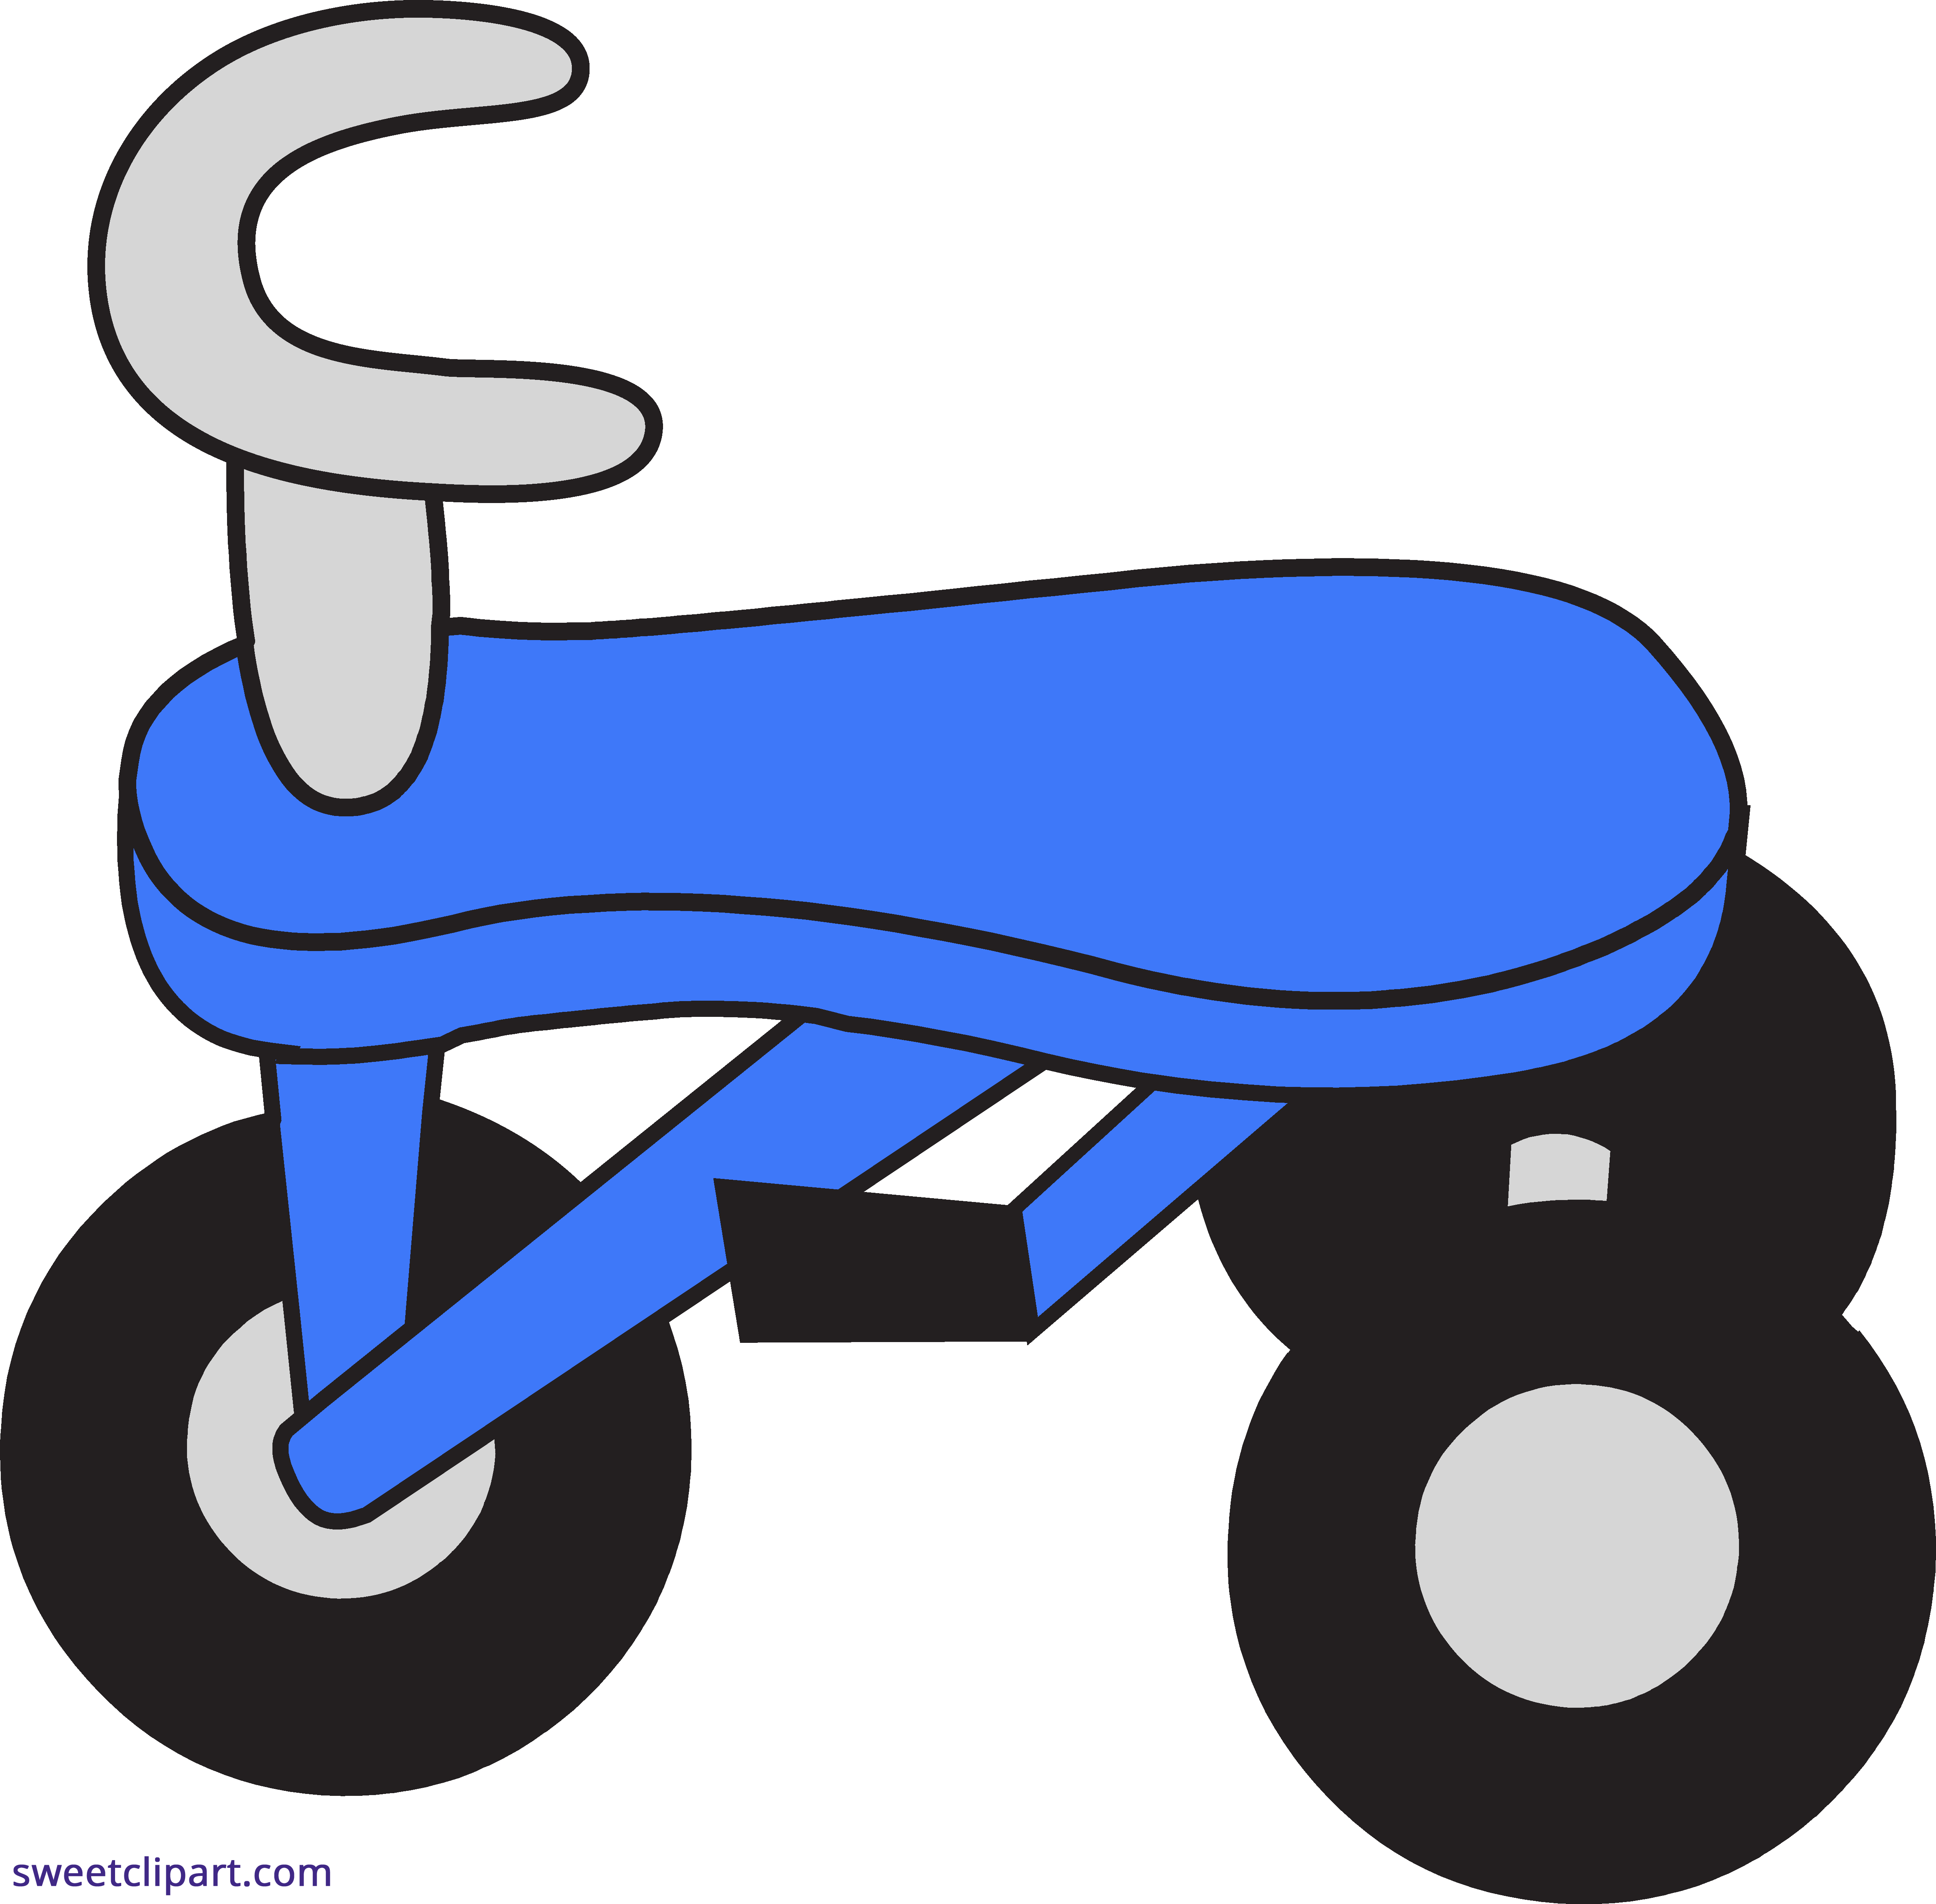 Blue sweet clip art. Tricycle clipart svg transparent download